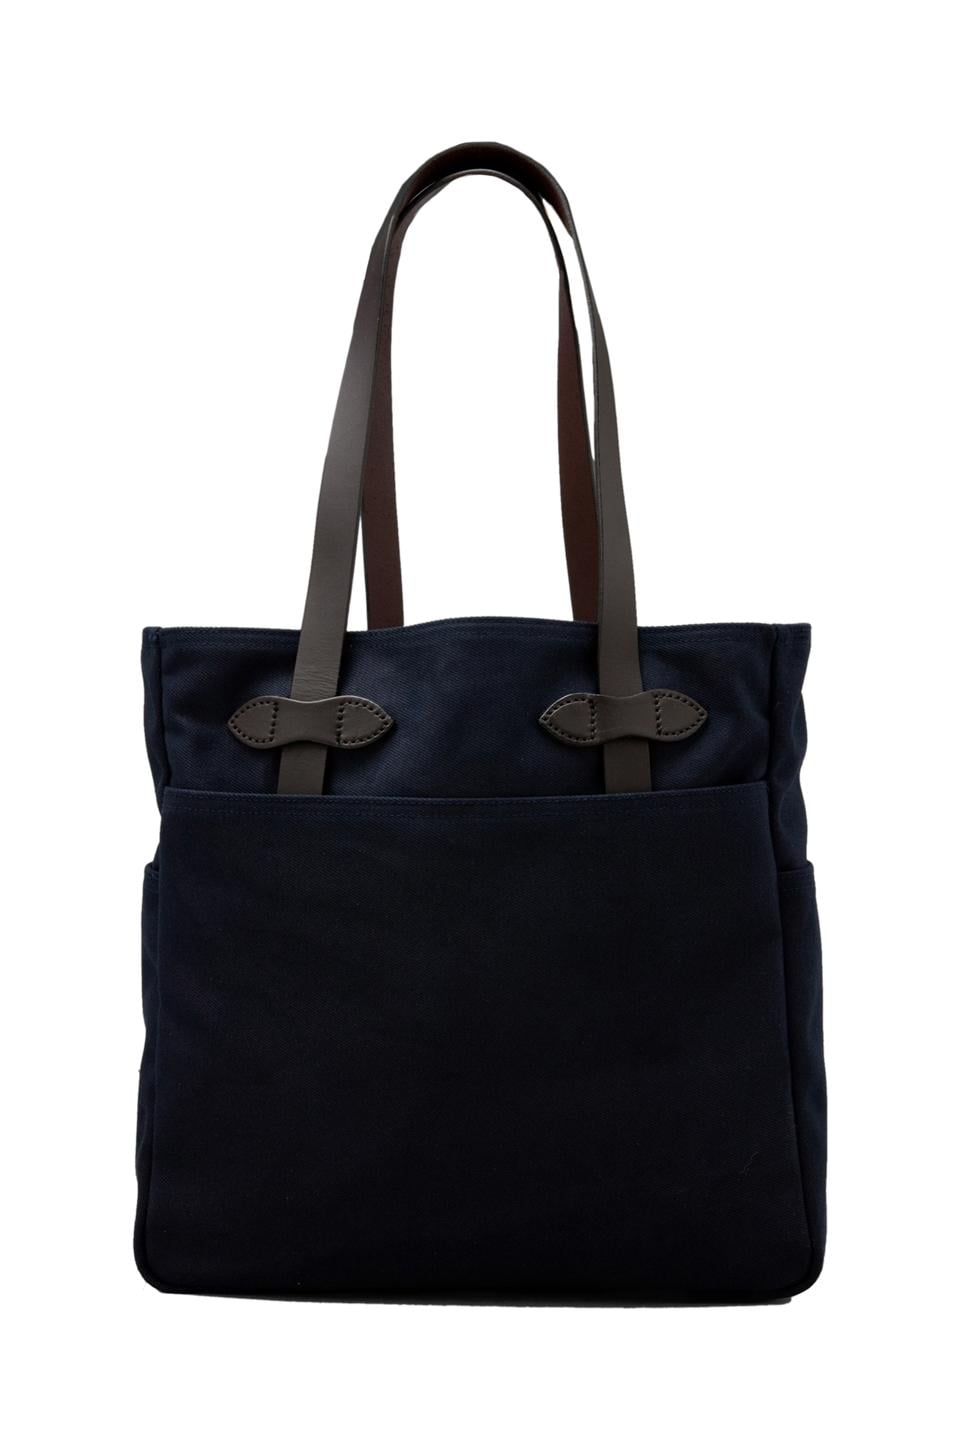 Filson Tote Bag in Navy